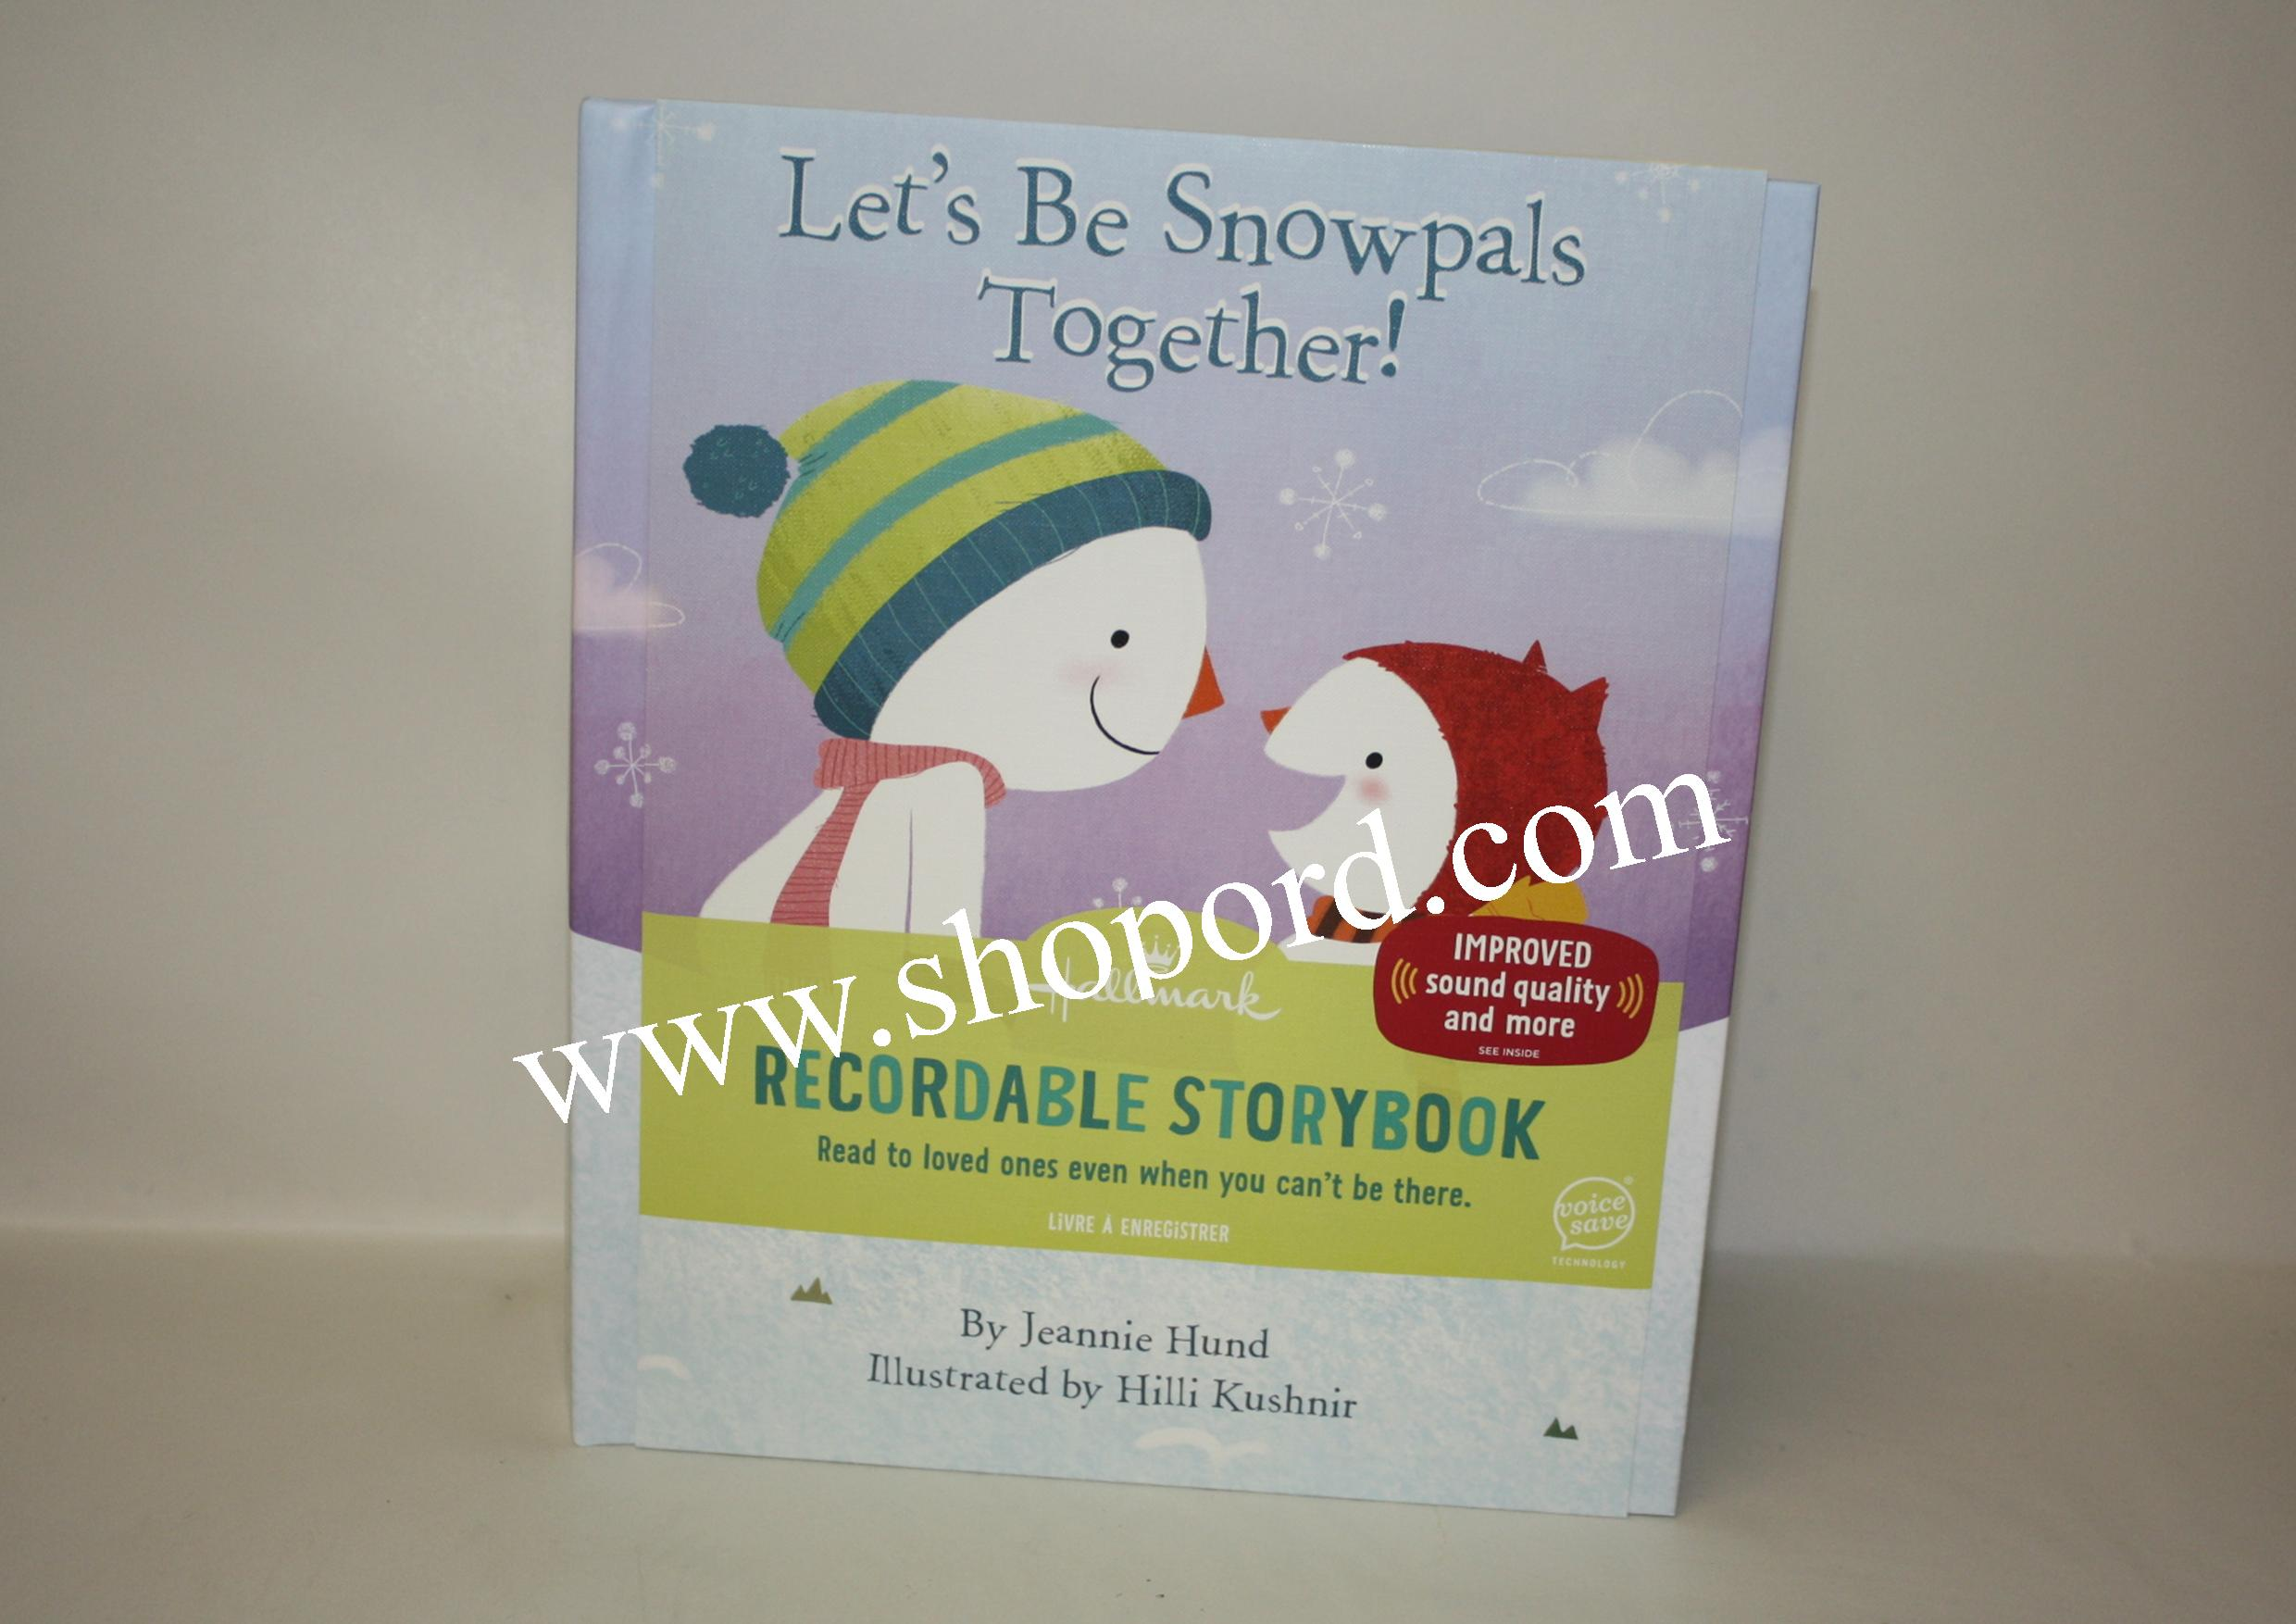 Hallmark Lets Be Snowpals Together Recordable Storybook KOB7781